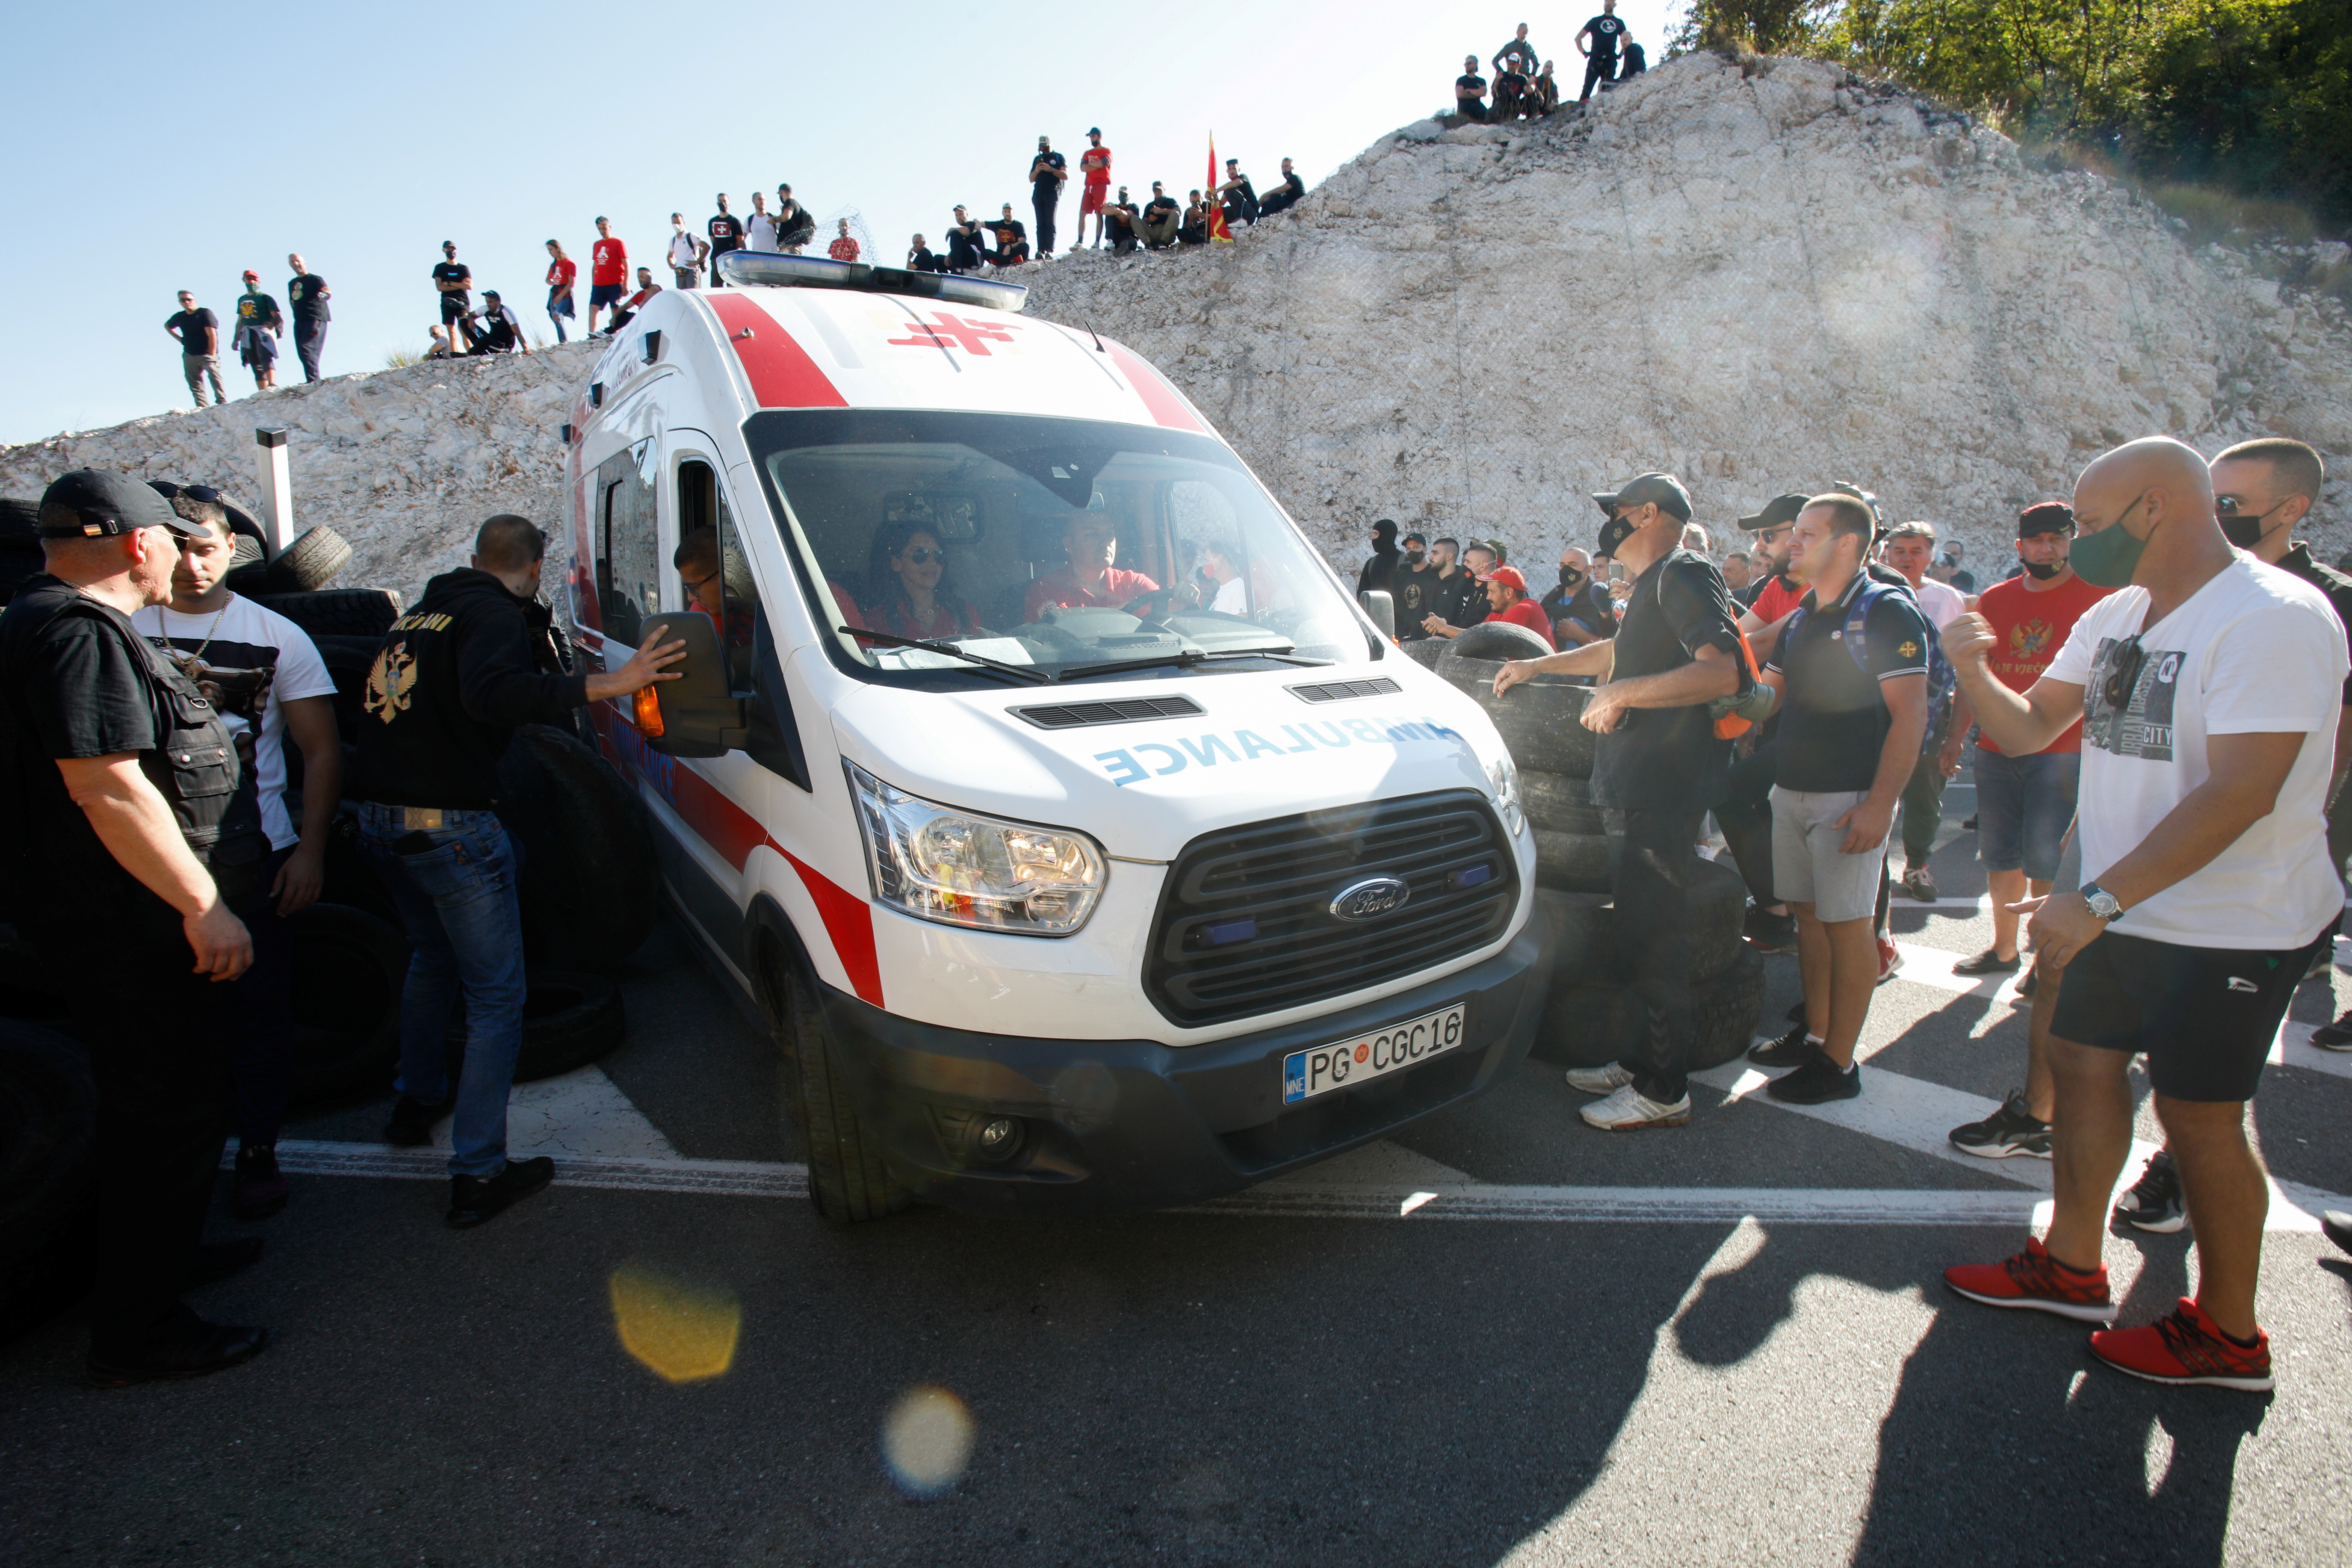 An ambulance attends the place where demonstrators participate in a protest against the enthronement of Bishop Joanikije in Cetinje, Montenegro, September 4, 2021. REUTERS/Stevo Vasiljevic